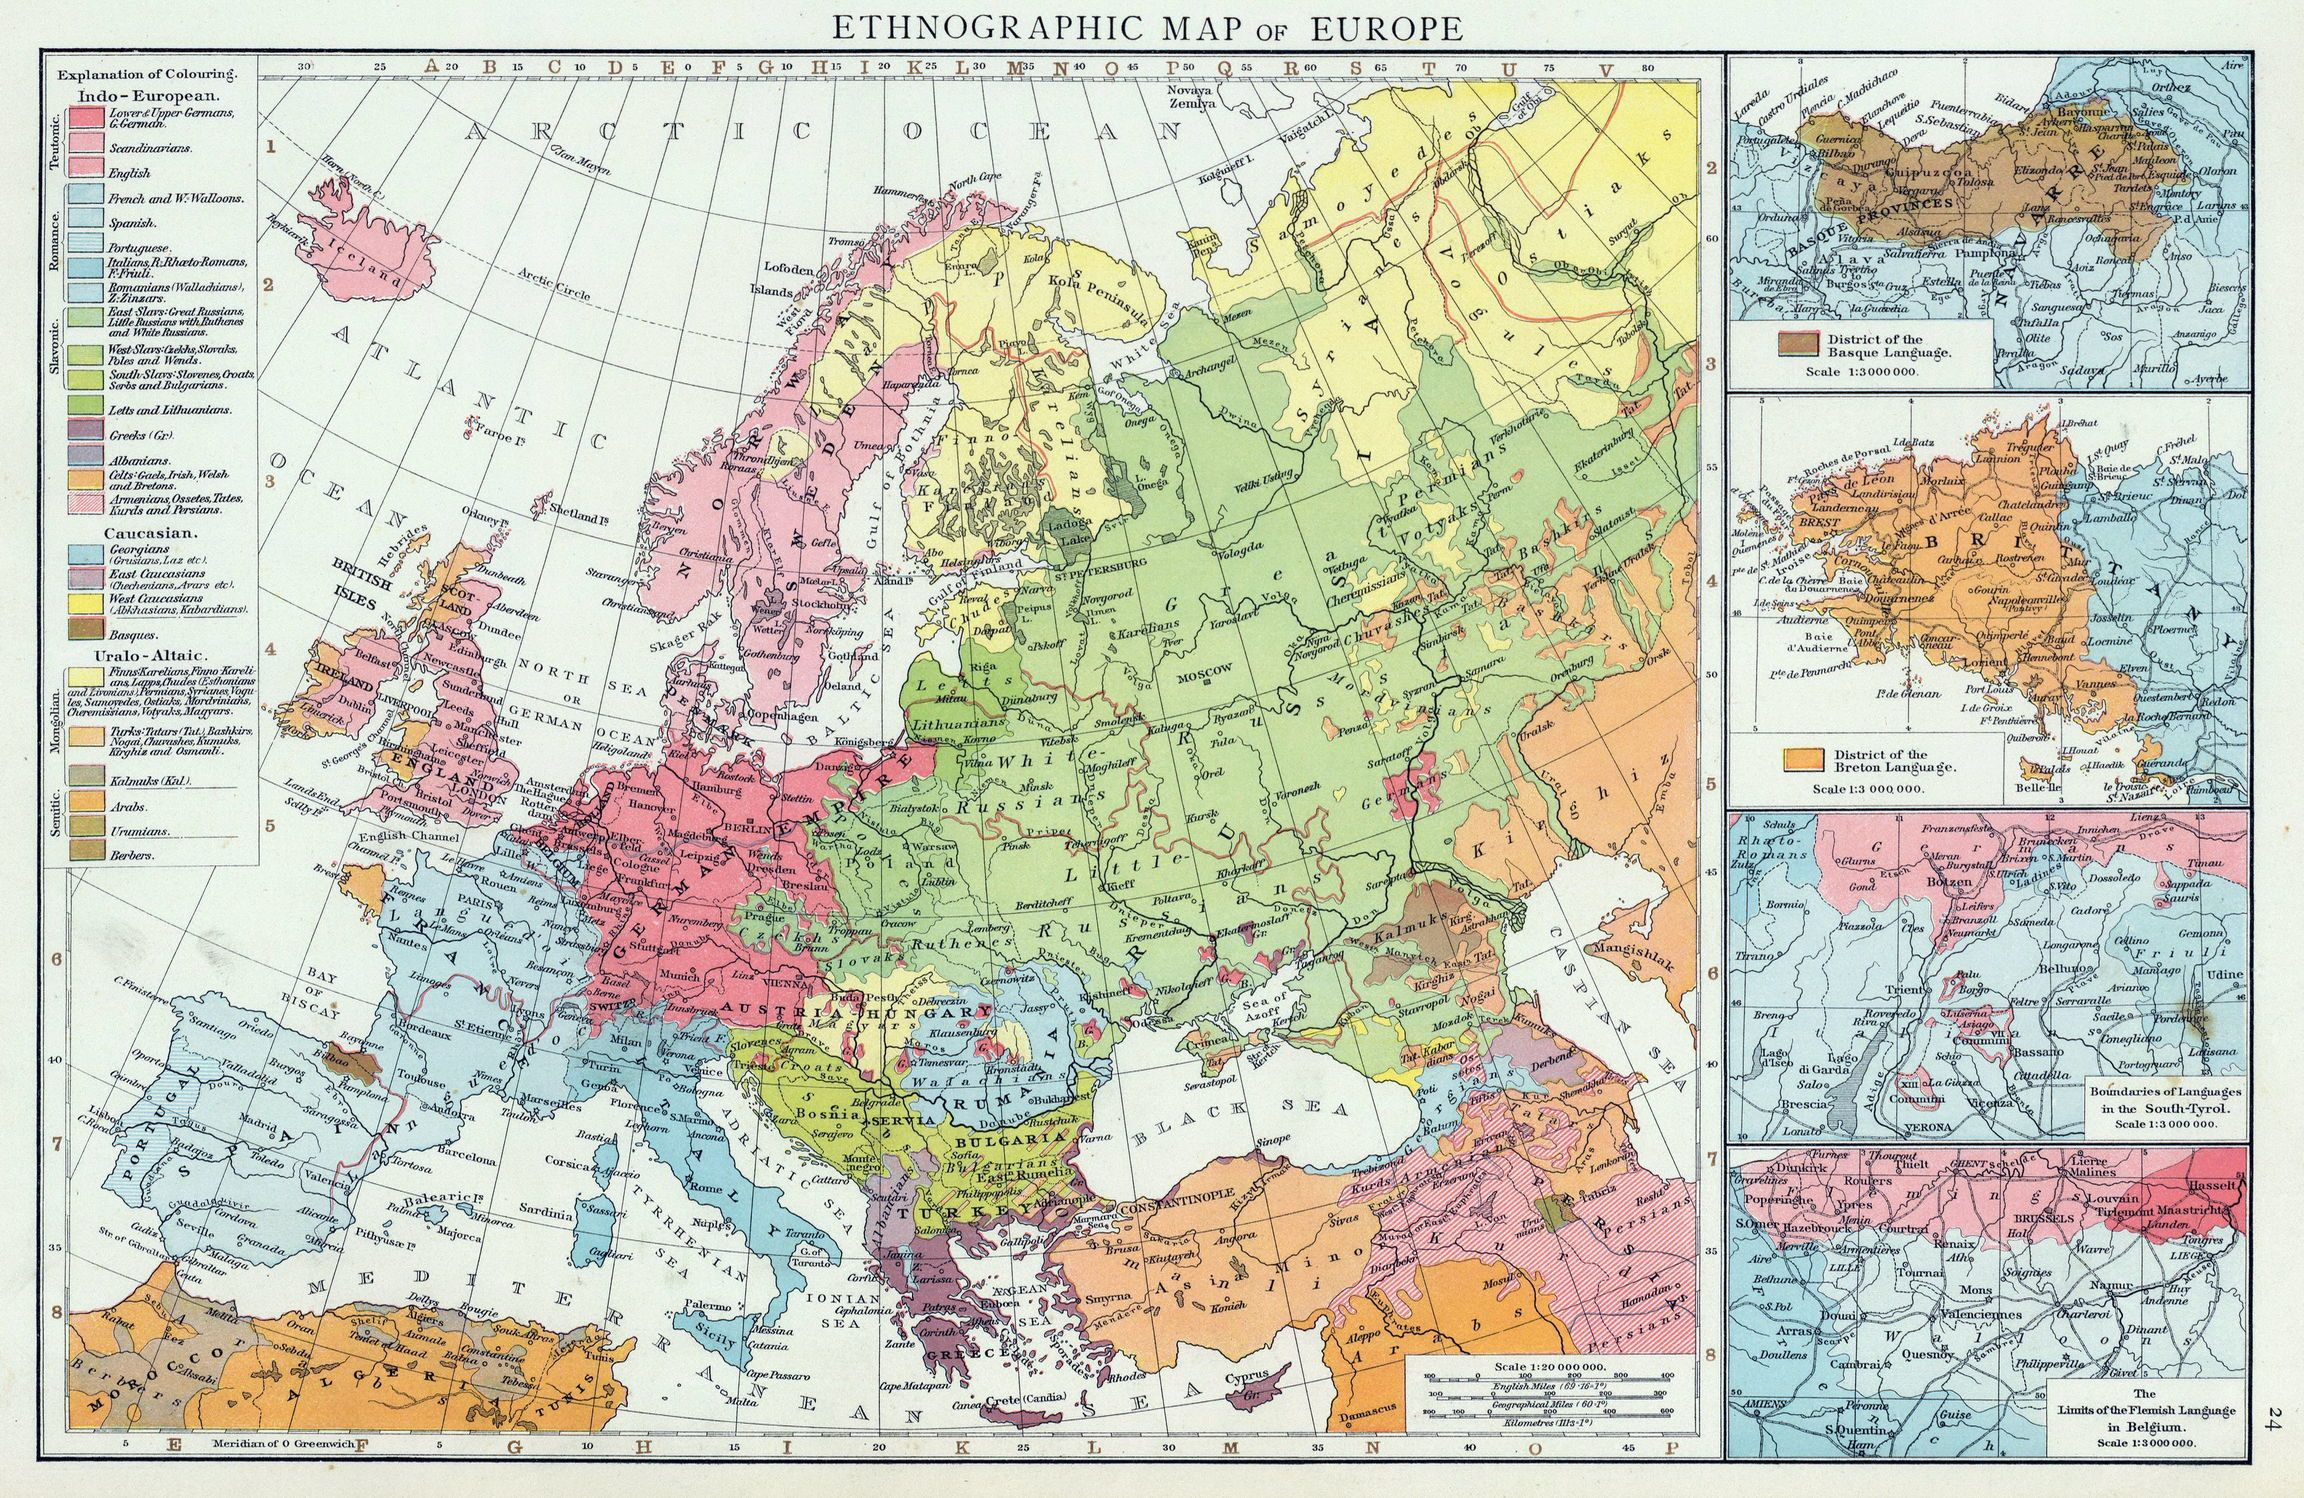 Ethnographic Map Of Europe (1900)